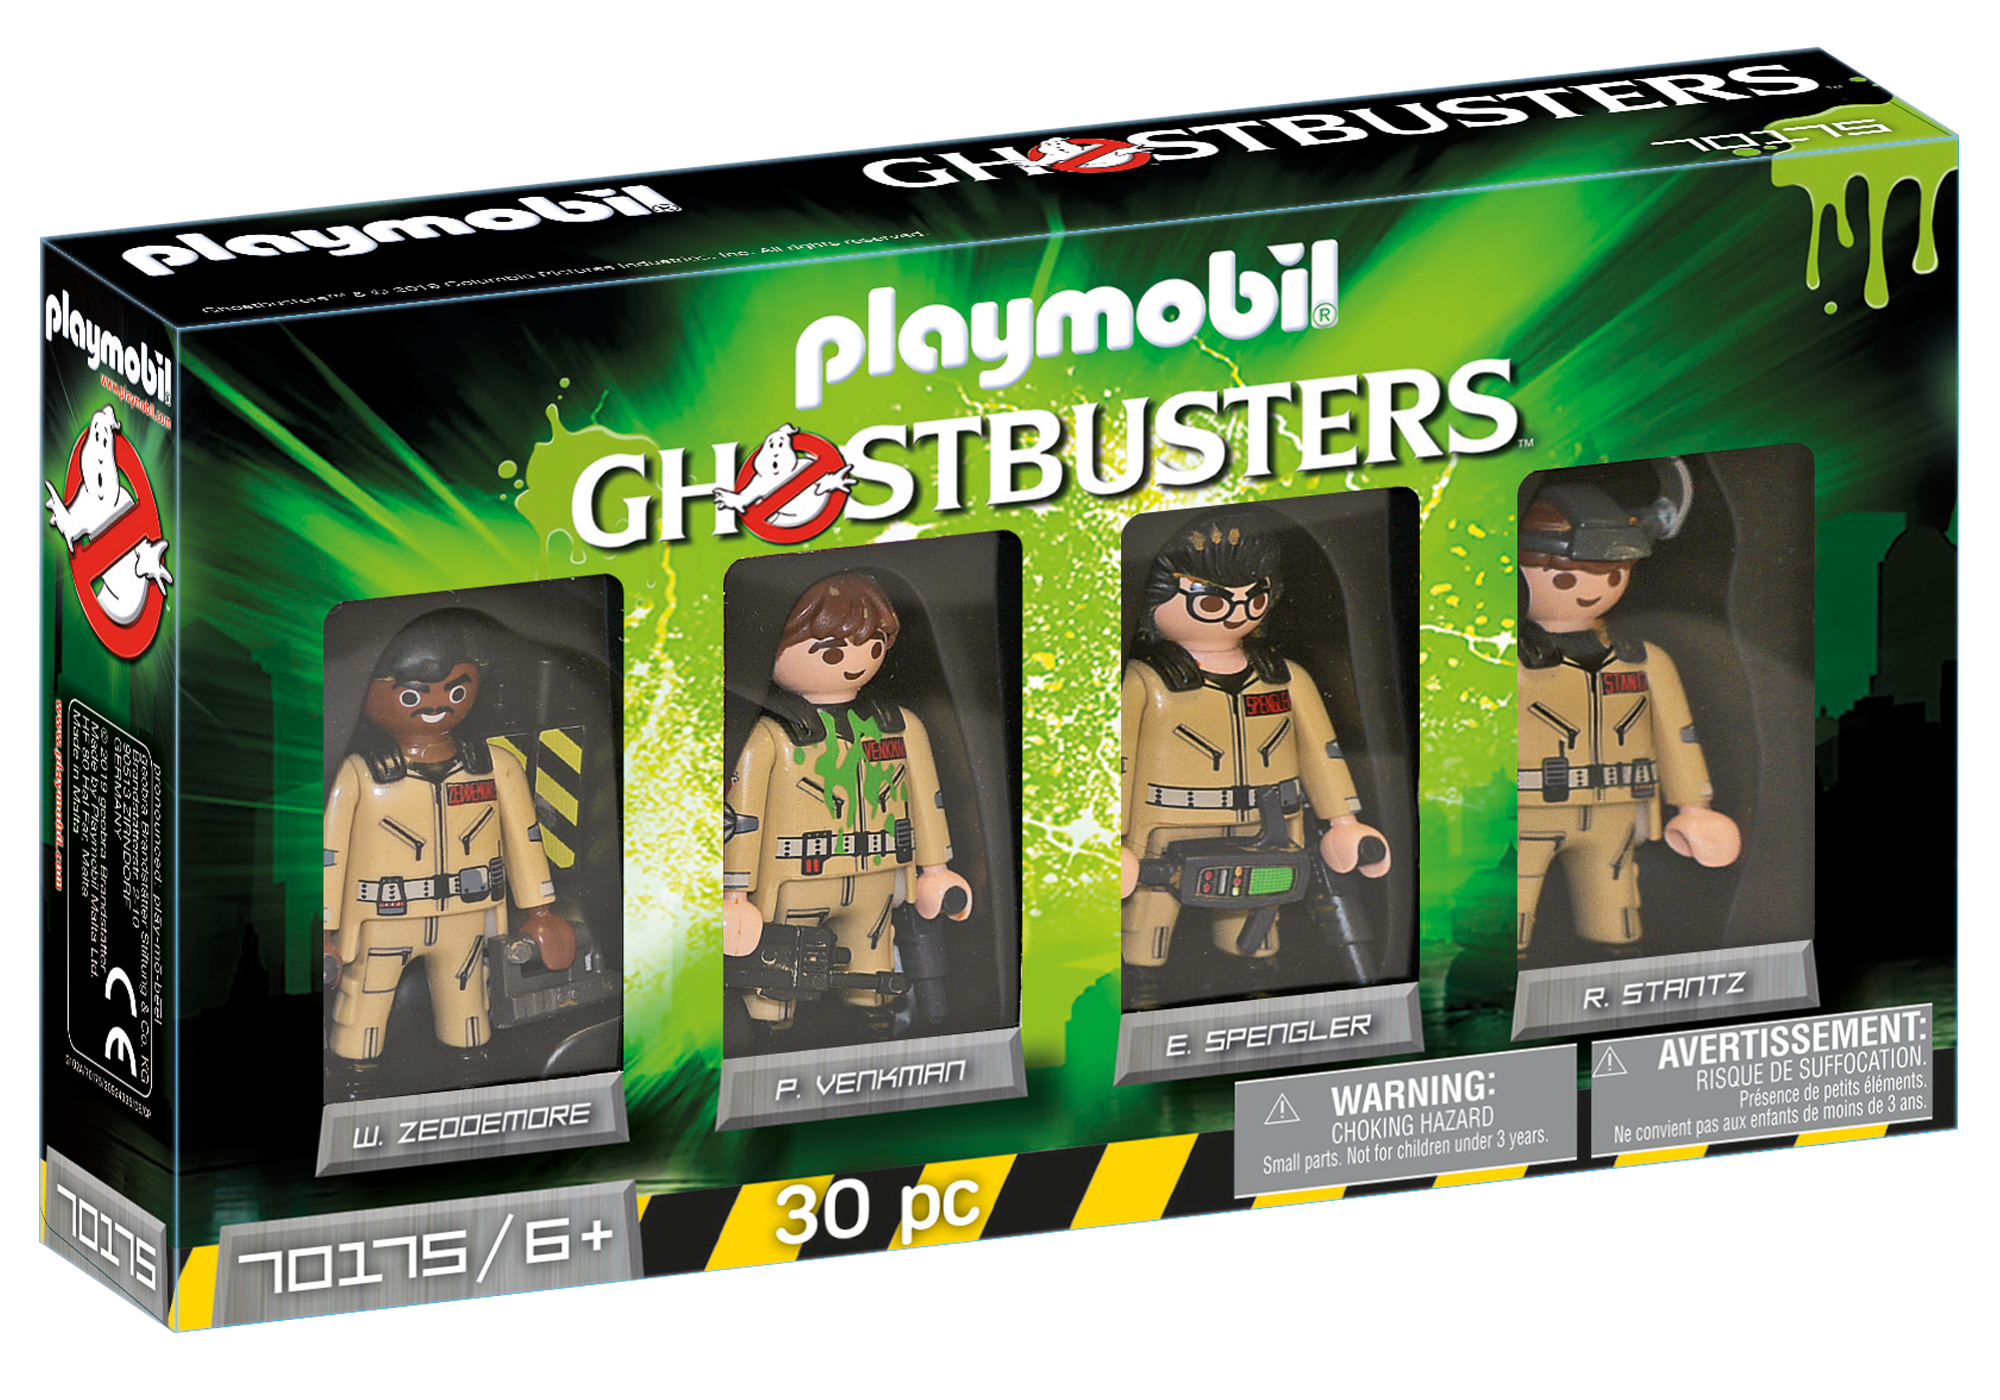 http://media.playmobil.com/i/playmobil/70175_product_box_front/Ghostbusters™ Samlarbyggsats Ghostbusters